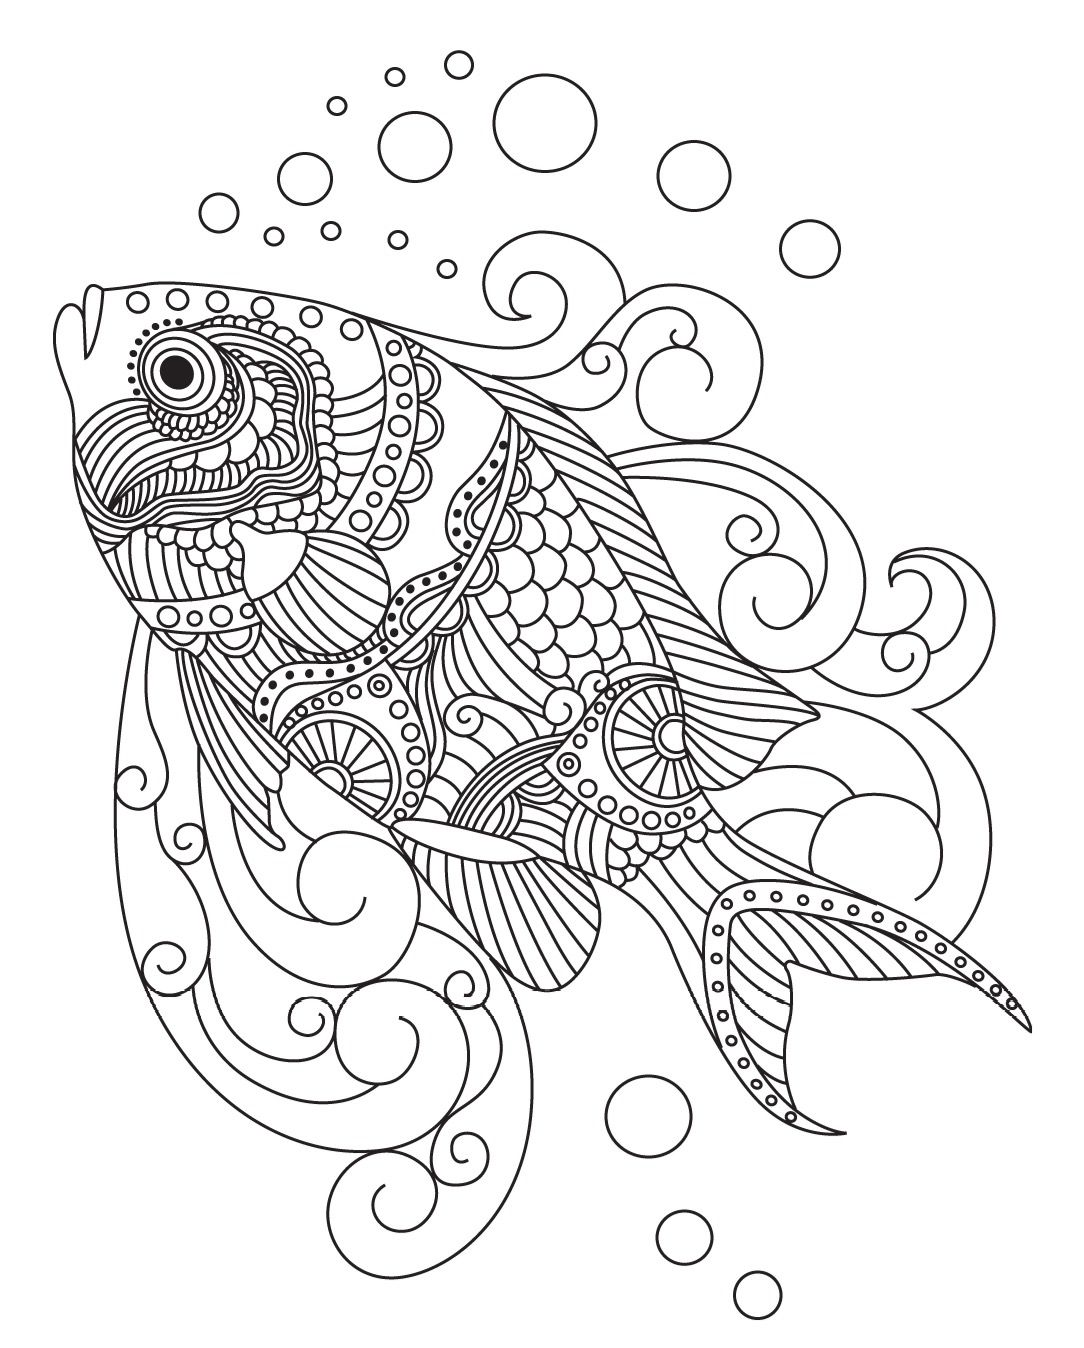 Fish Colorish Coloring Book For Adults Mandala Relax By Goodsofttech Mandala Coloring Pages Mandala Coloring Books Mandala Coloring